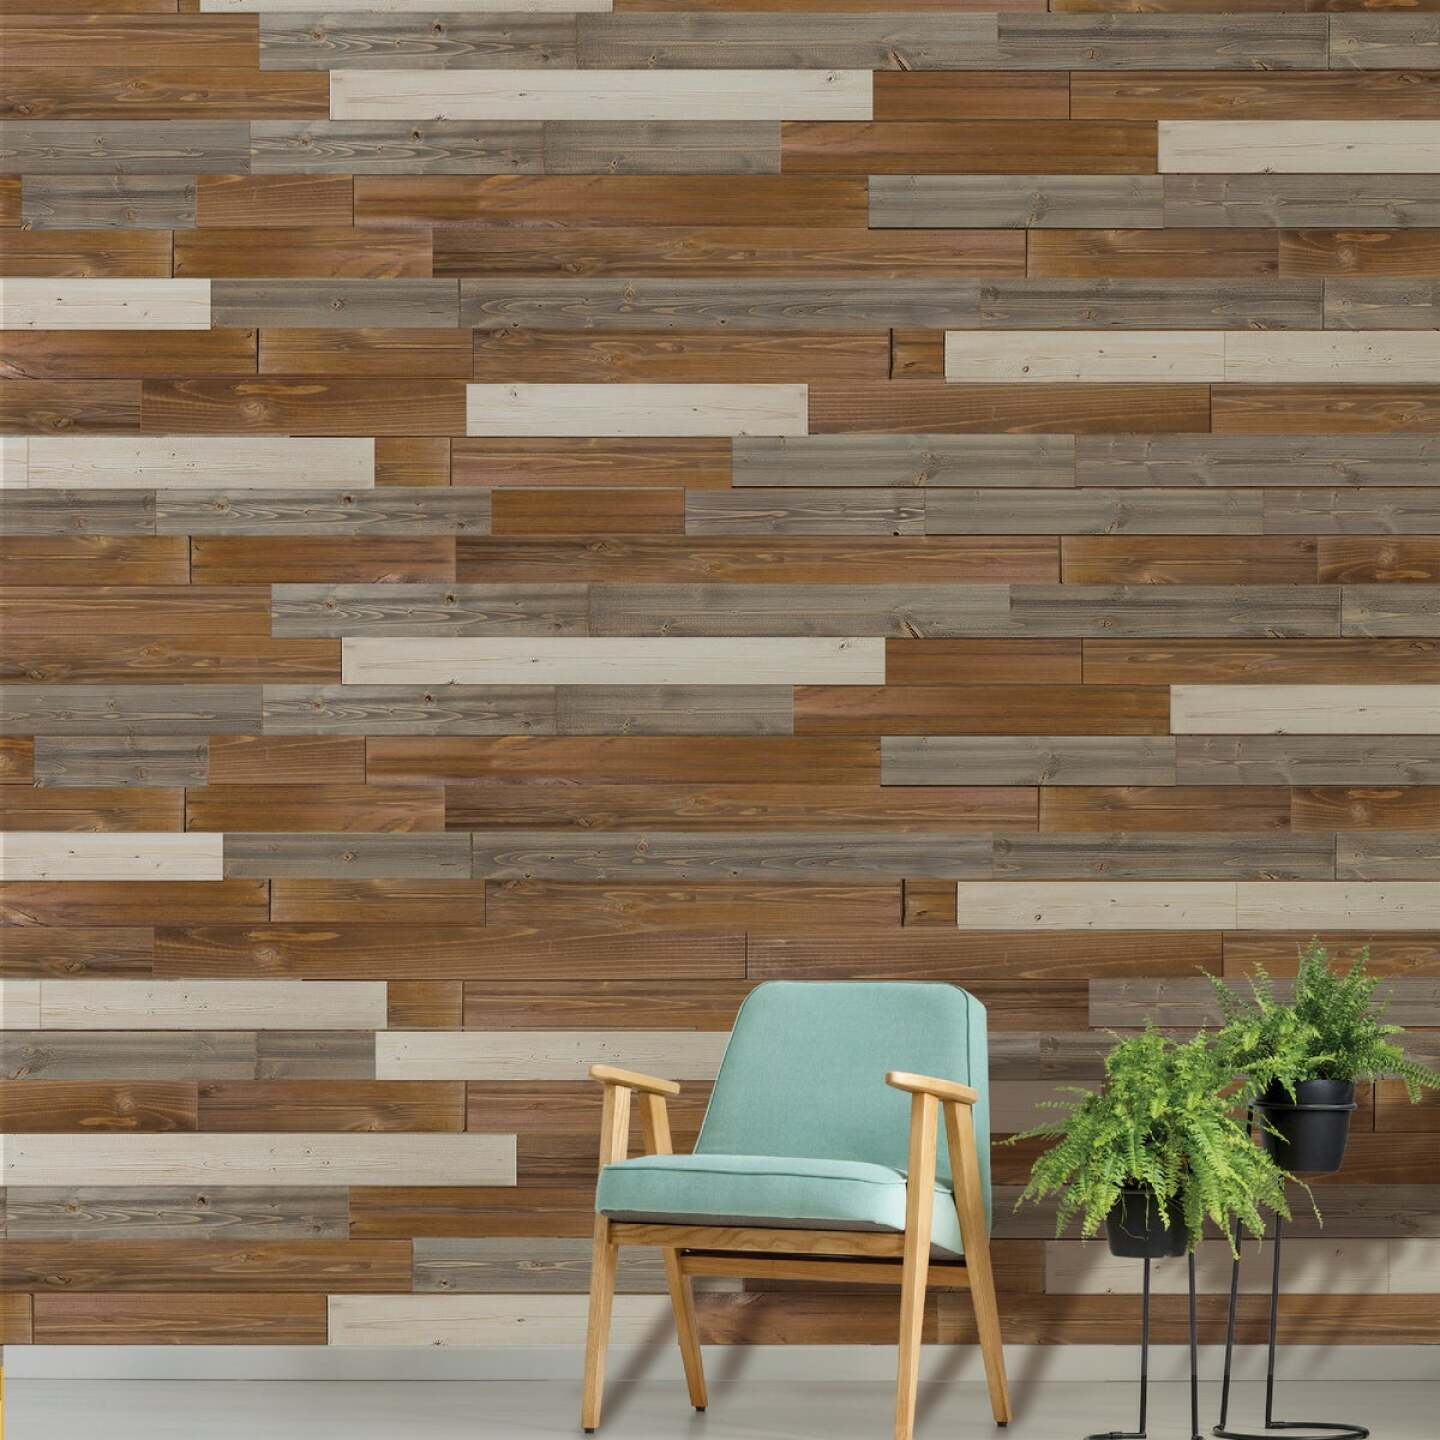 Global Product Sourcing 5.375 In W. x 5/16 In. Thick Gray Reclaimed Wood Shiplap Board Image 4